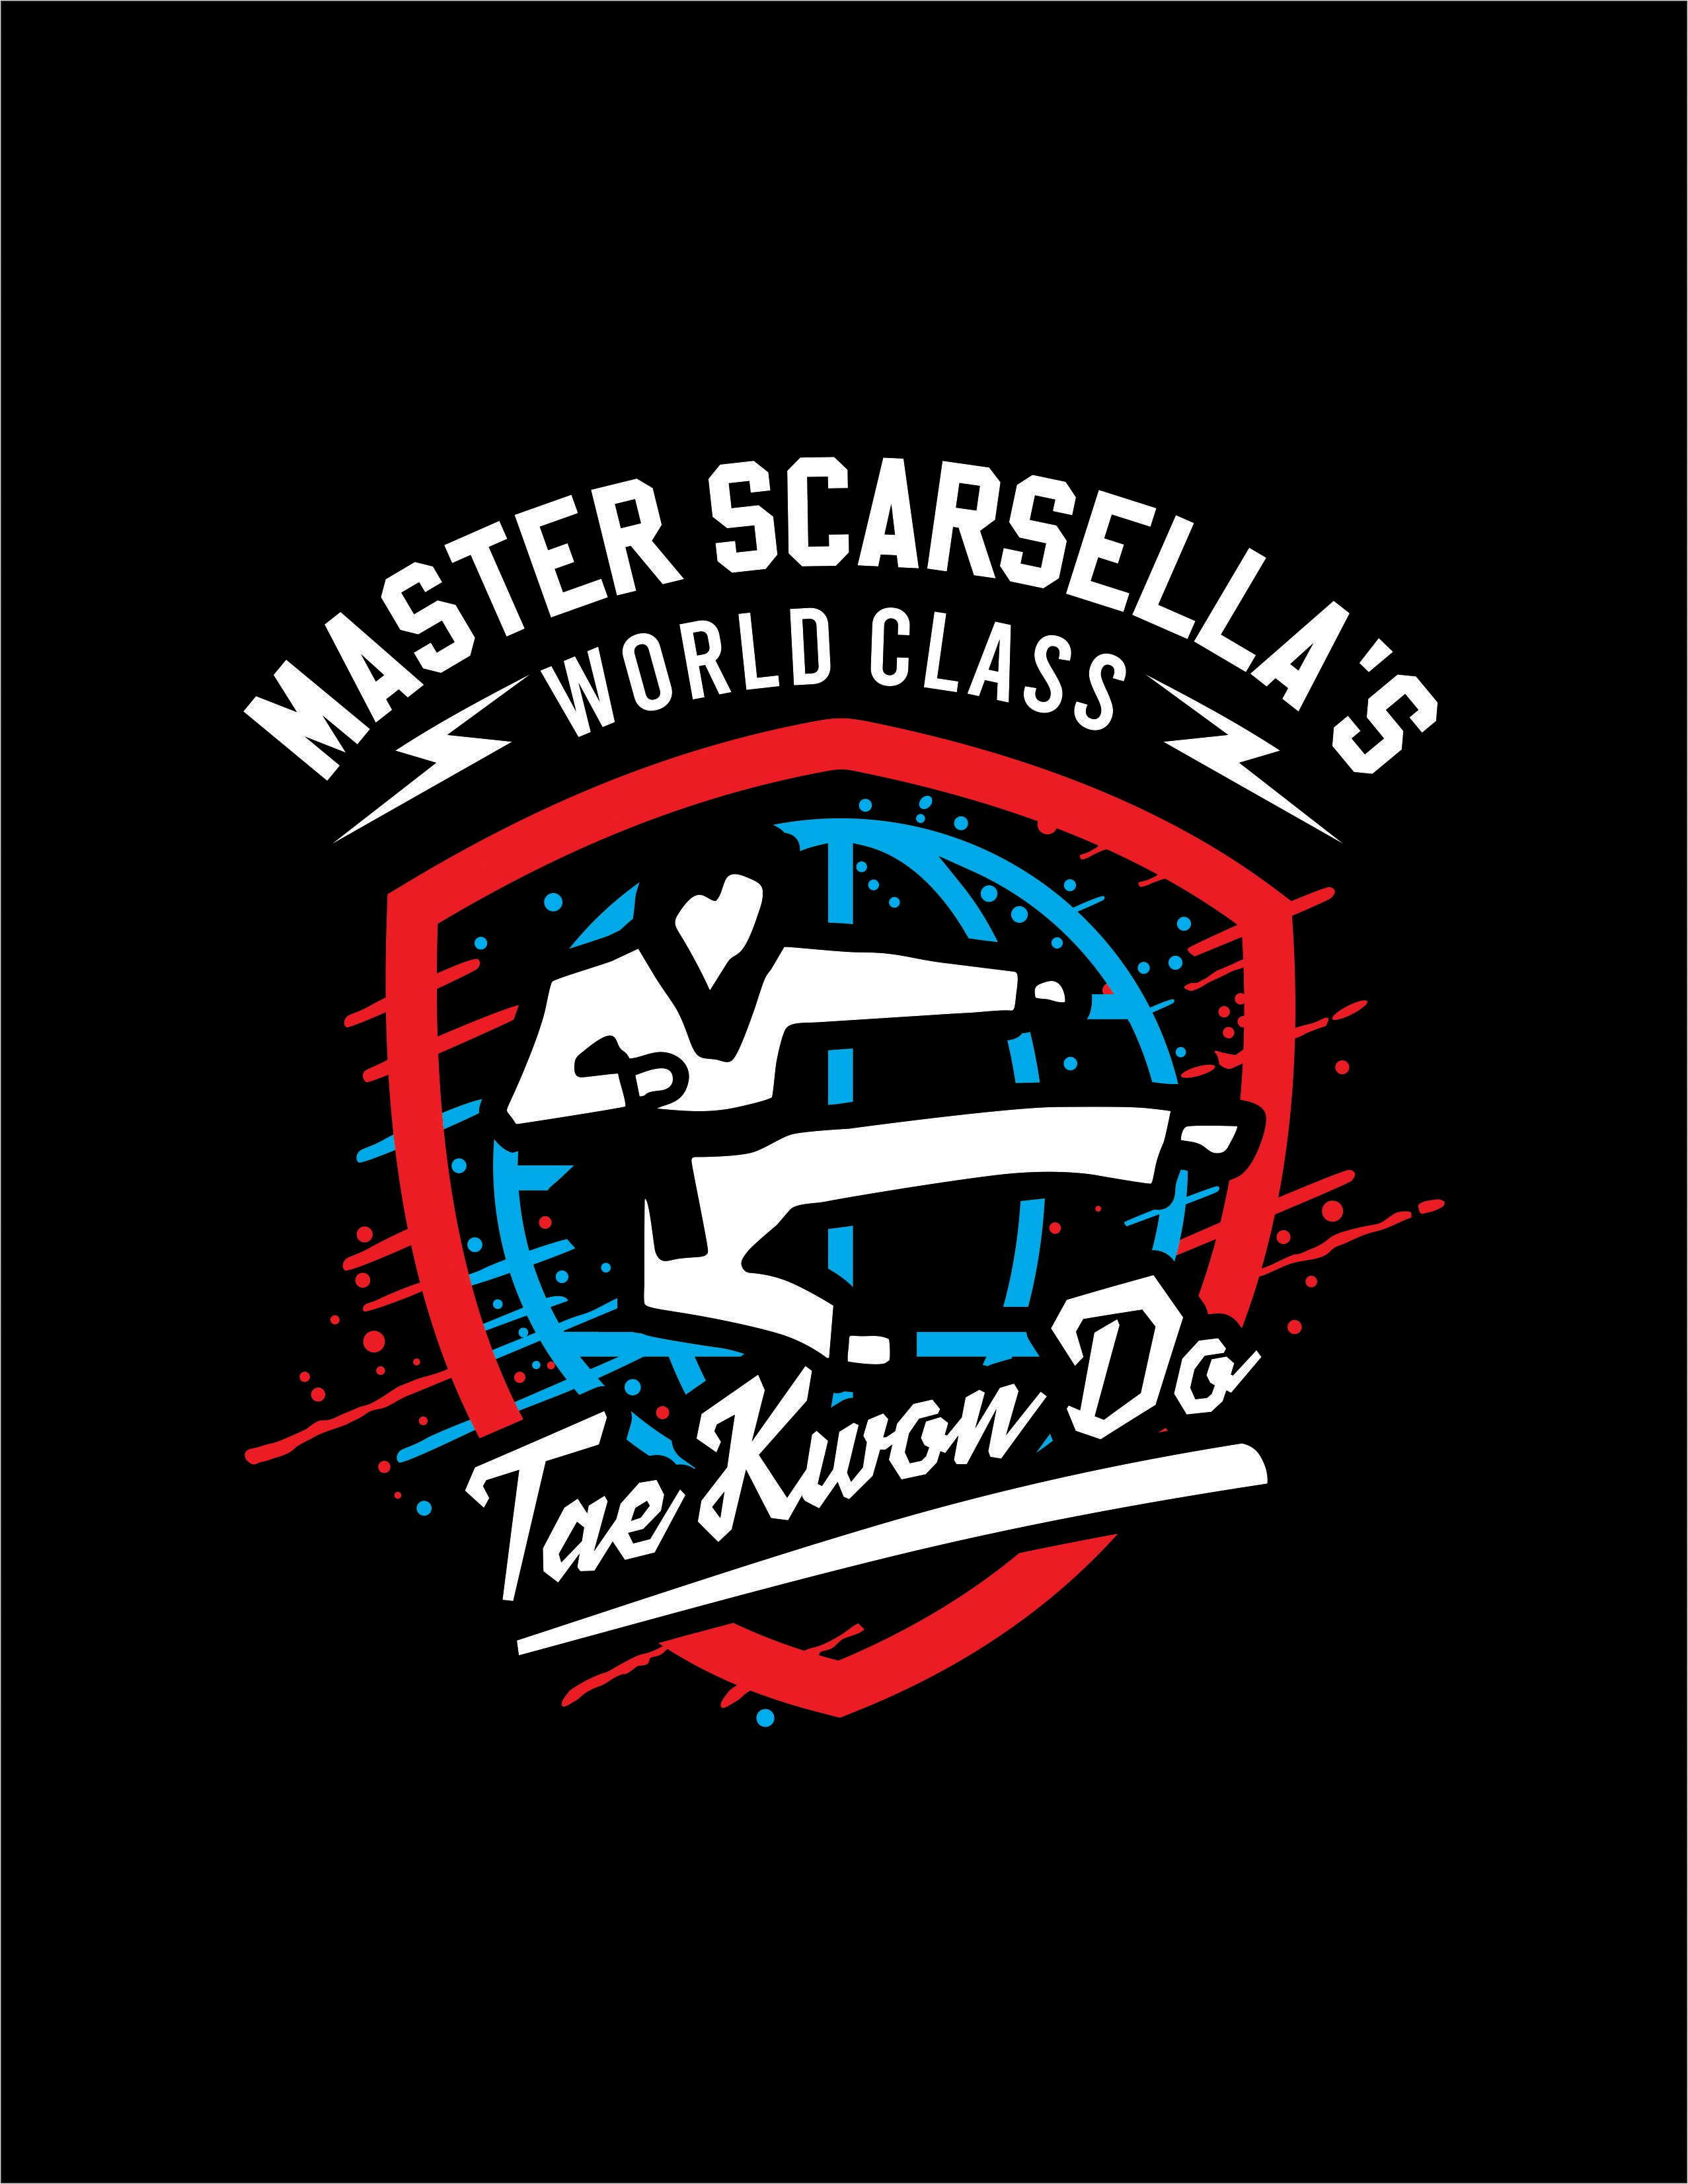 Taekwondo School looking for a fun t-shirt for all ages!